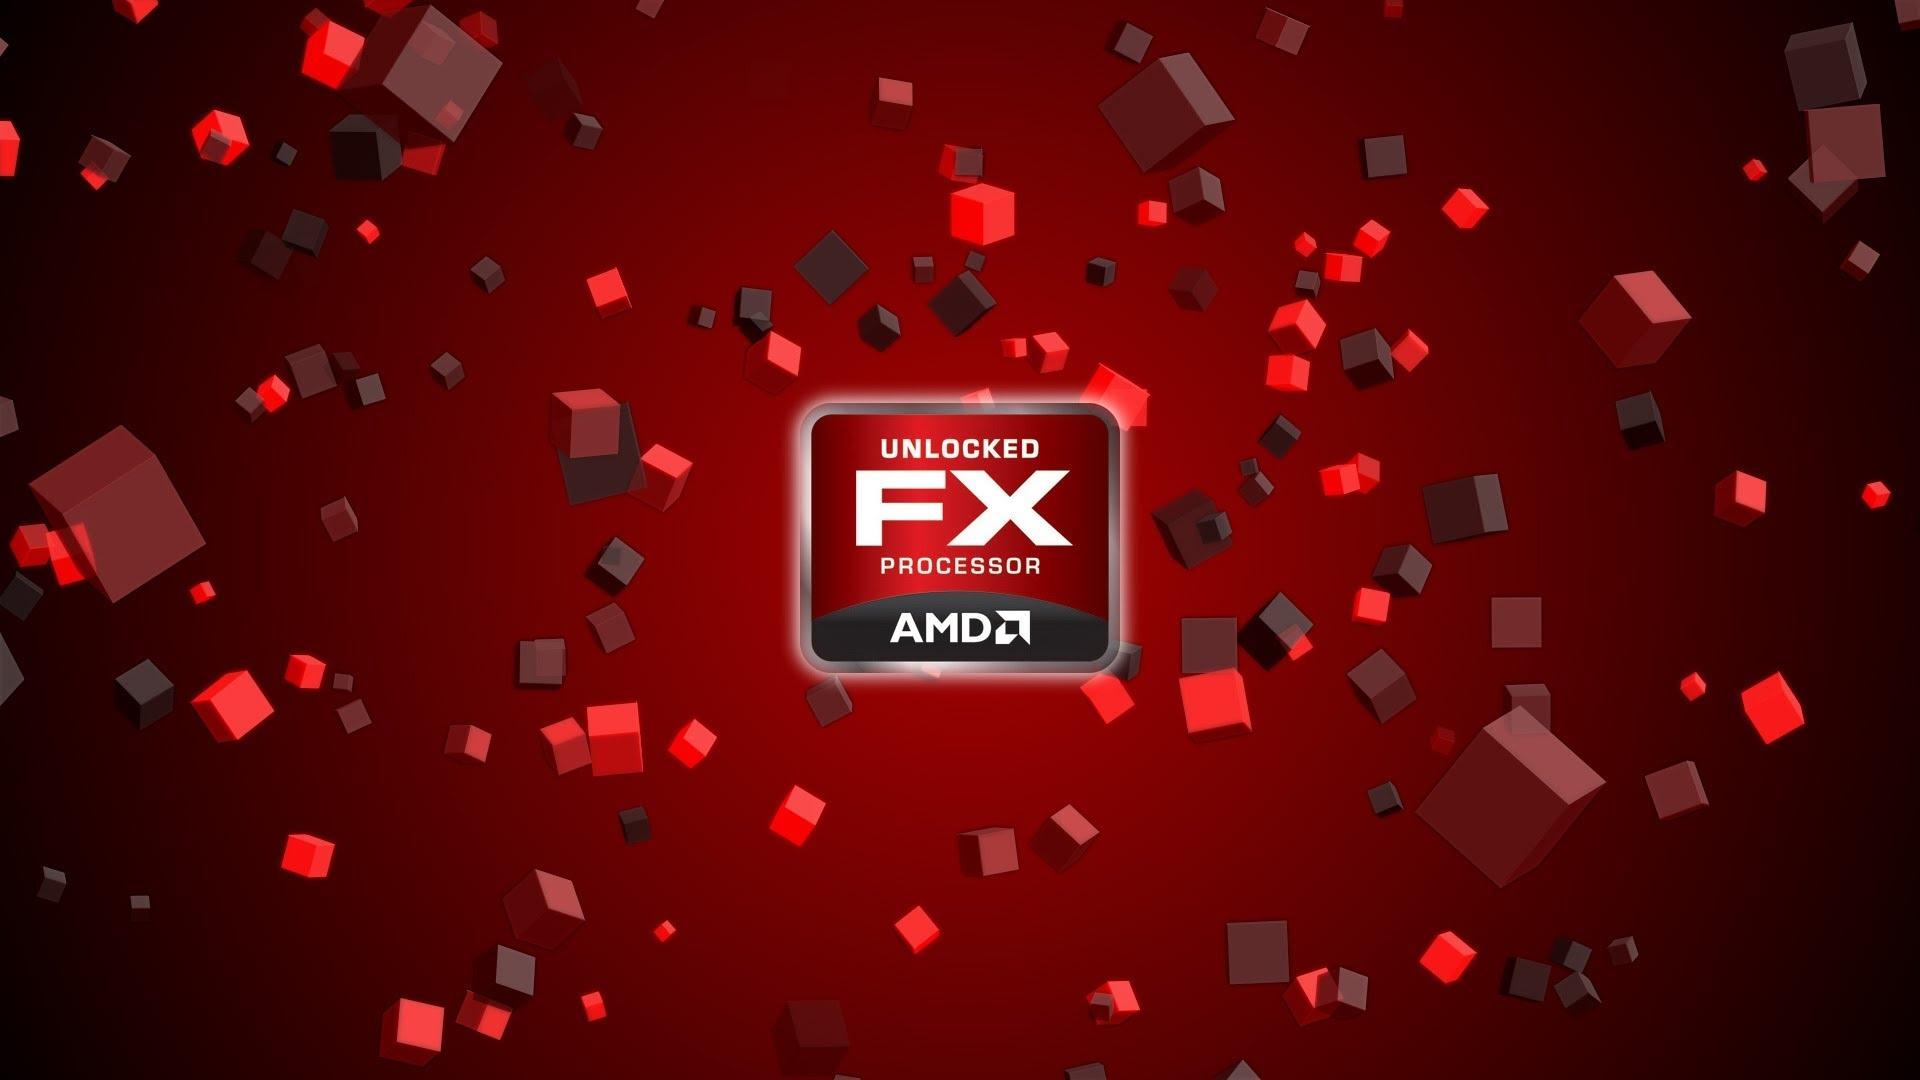 amd fx background by - photo #9